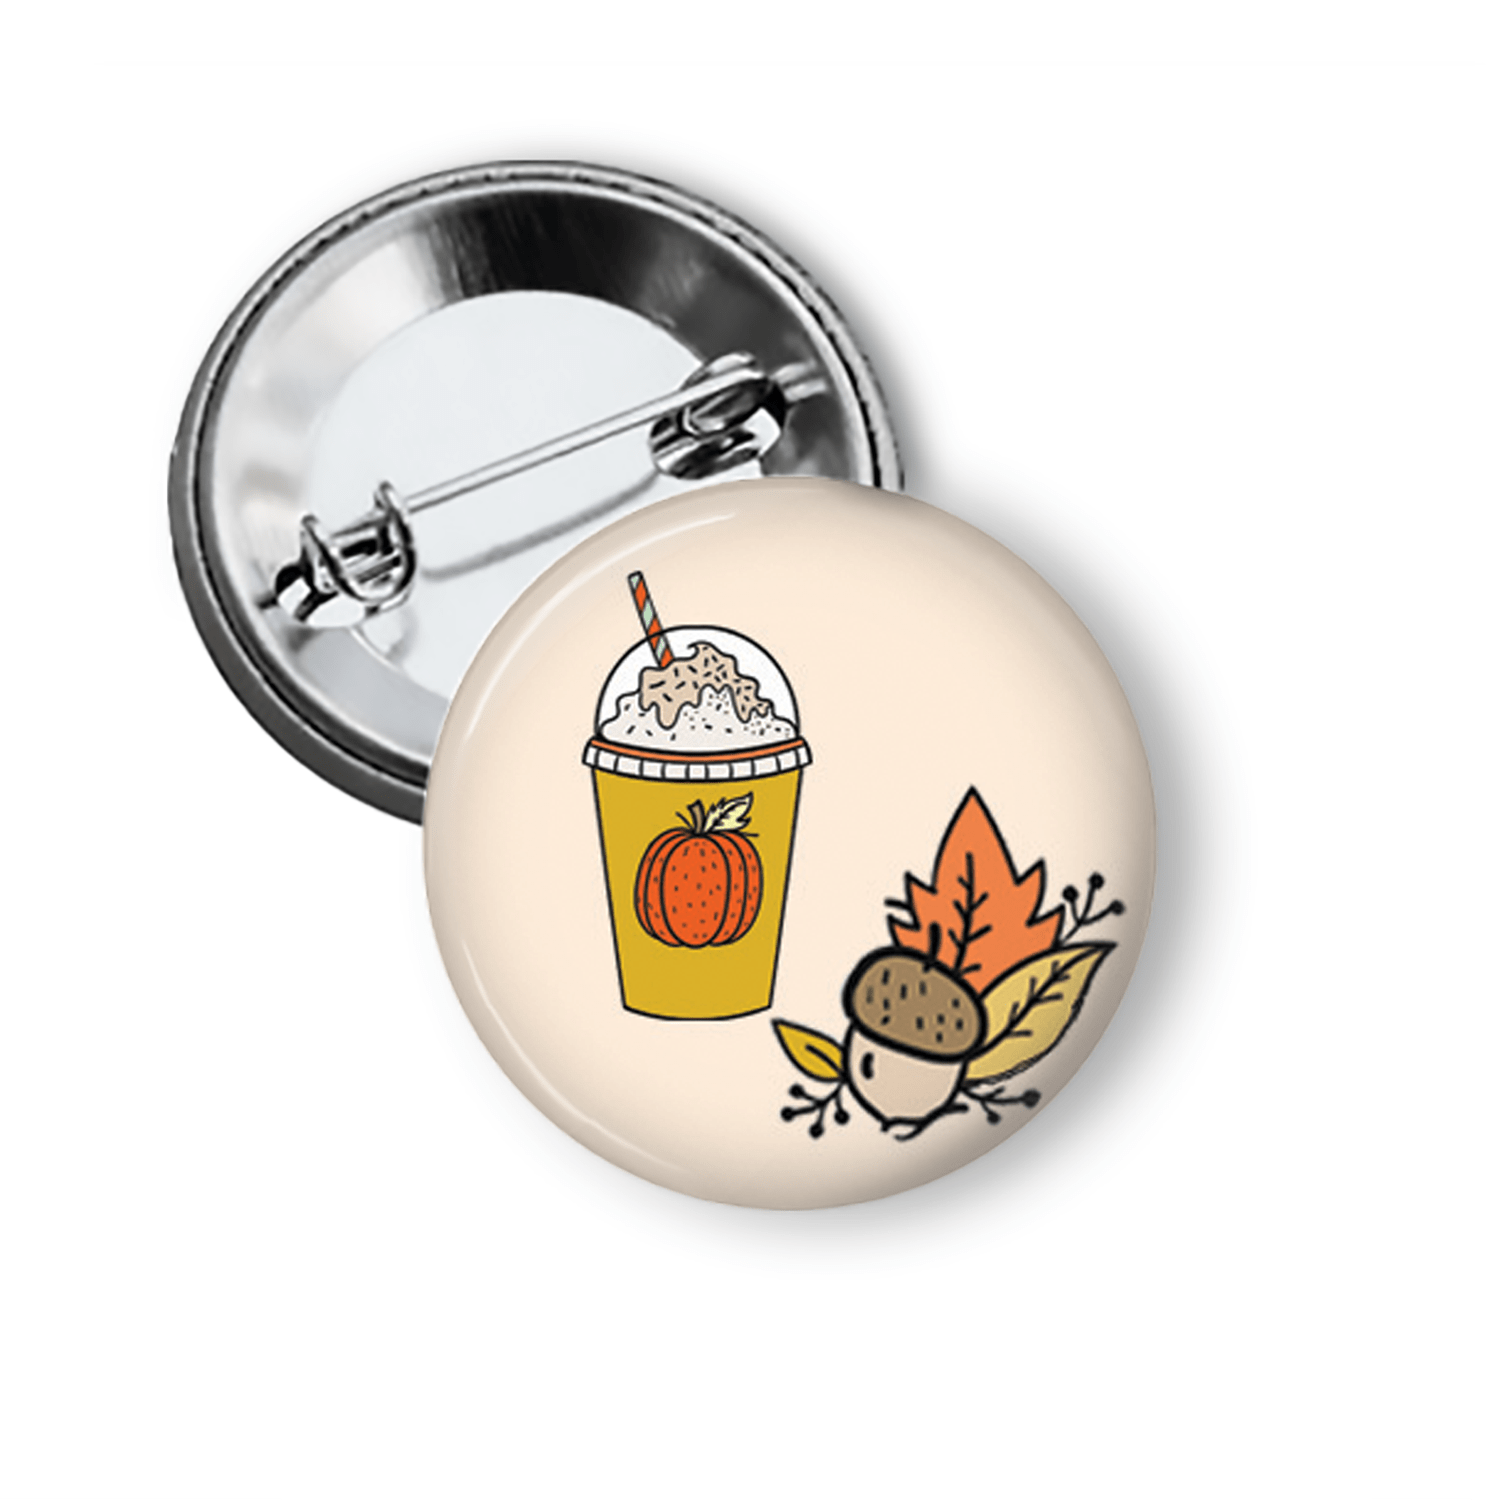 Pumpkin Spice Latte Fun Pin for Fall Pins Buttons For the People